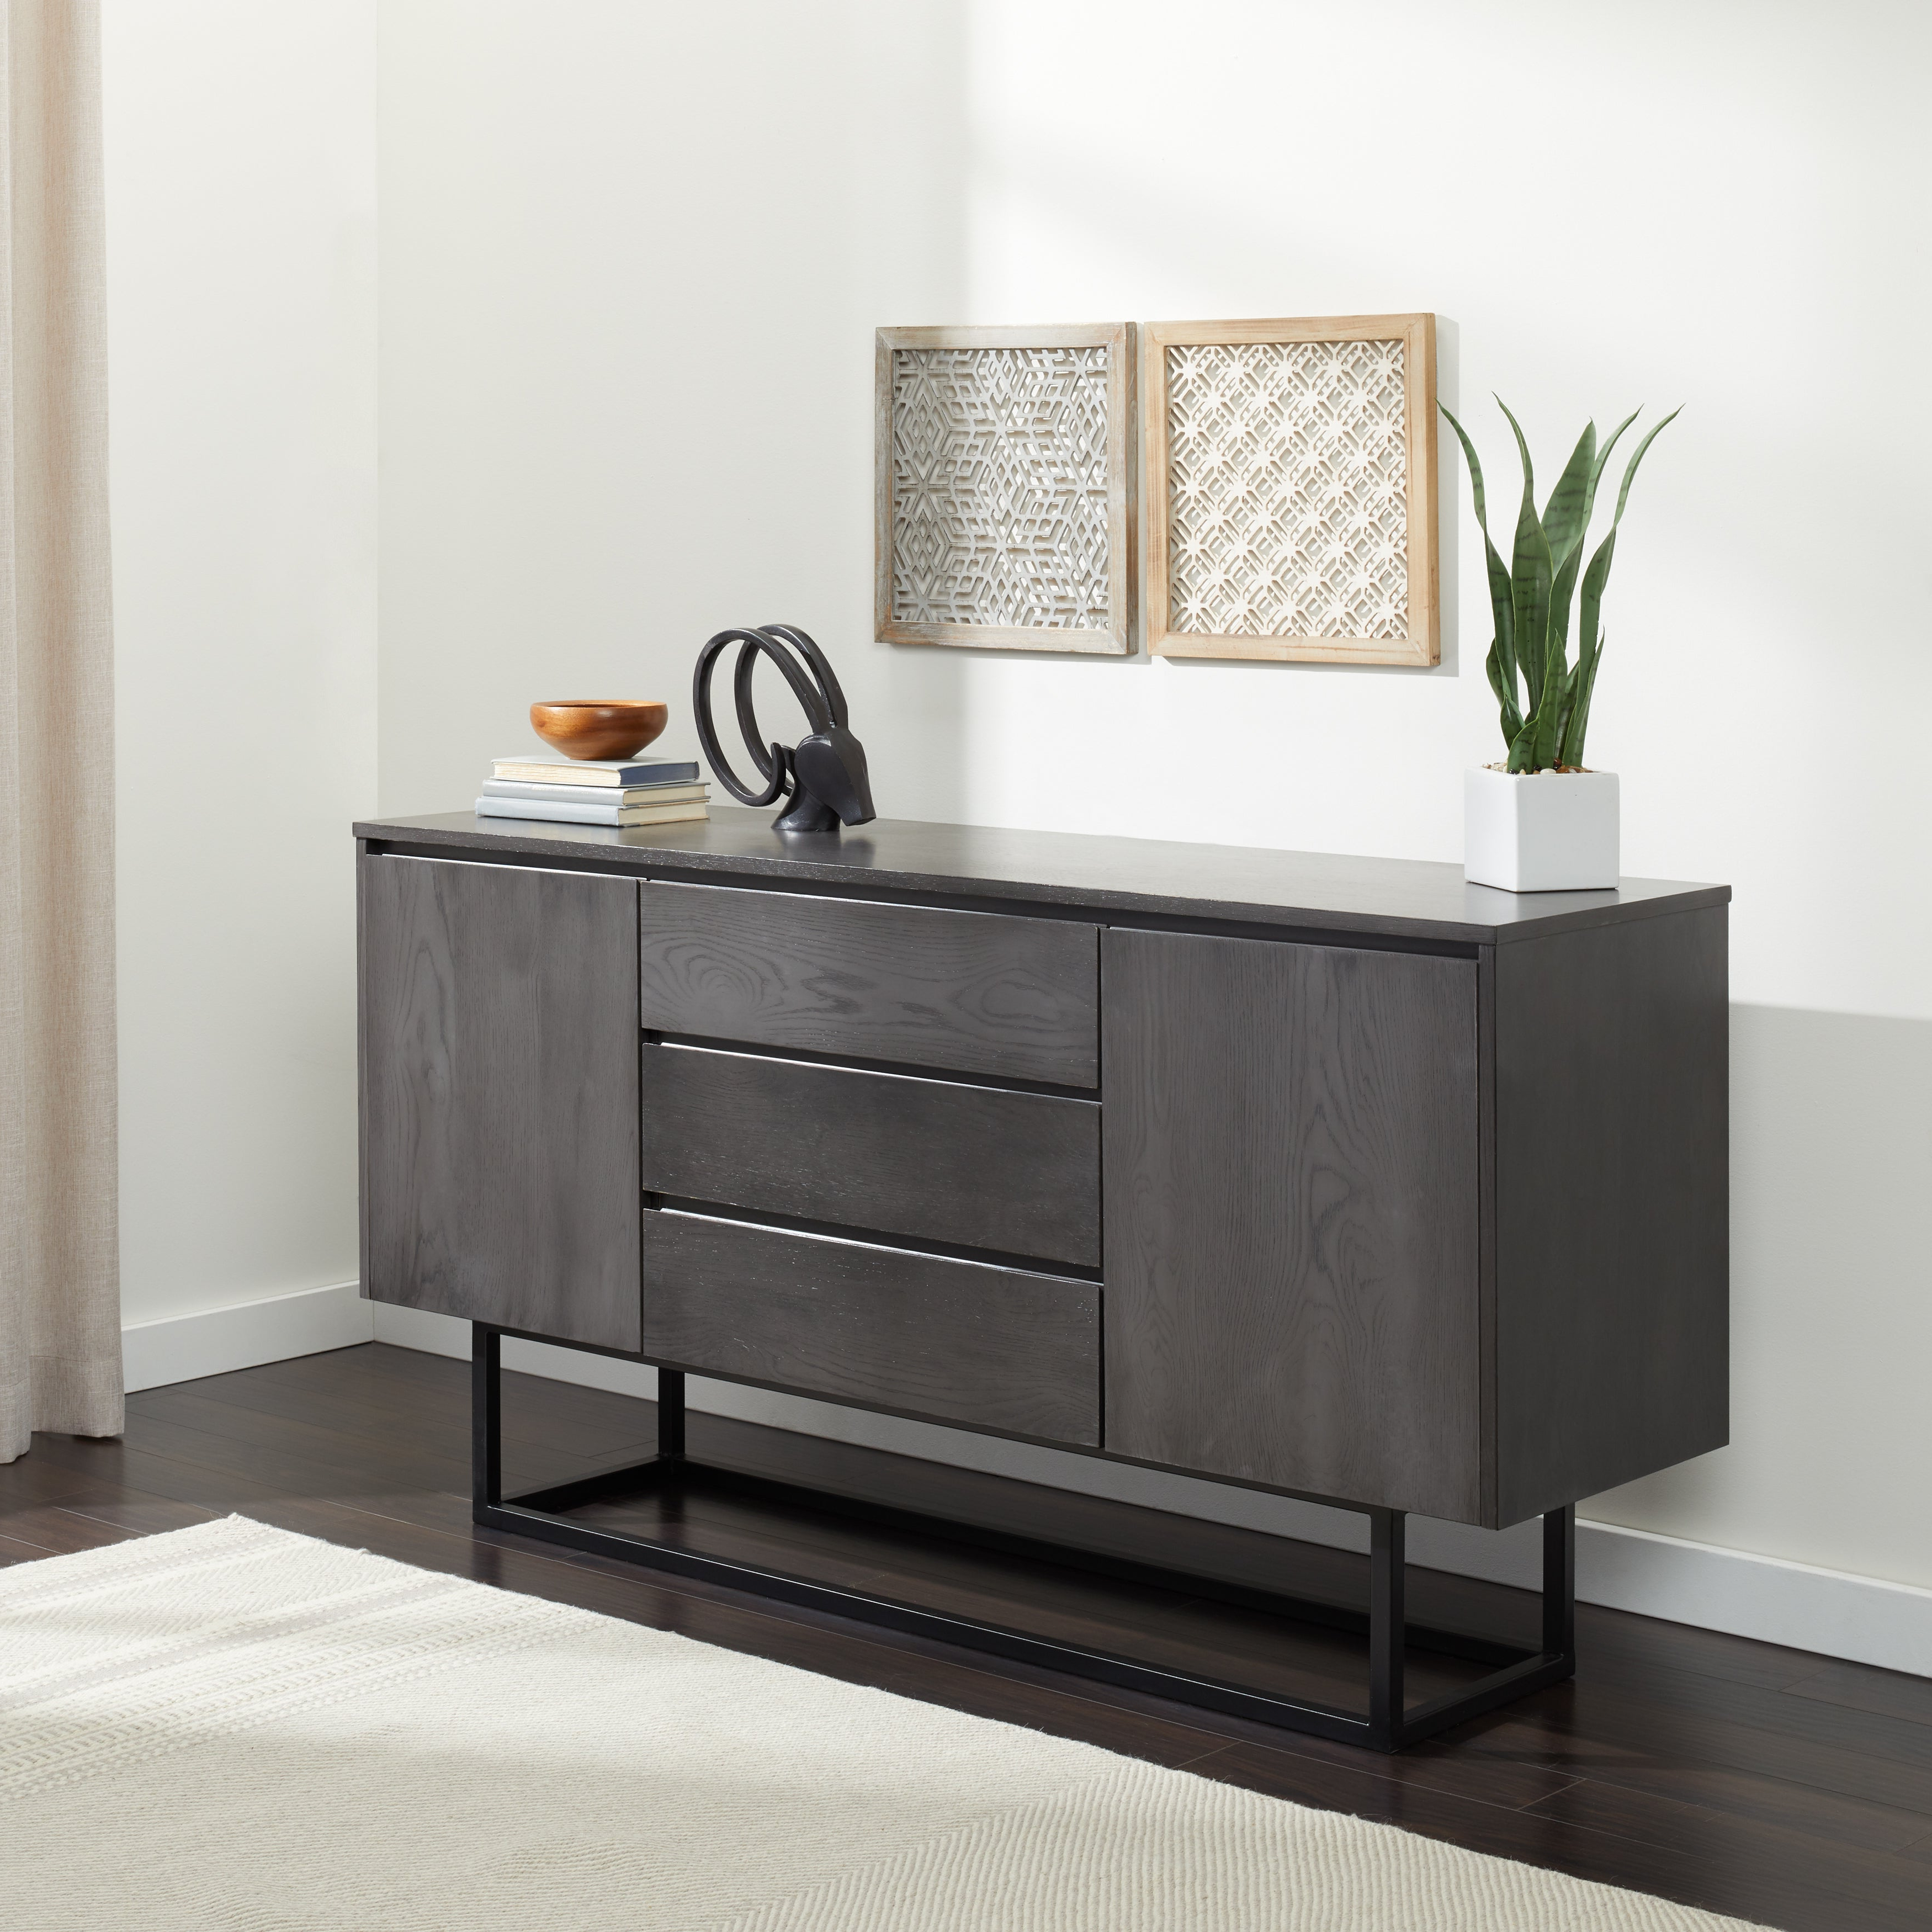 Taylor 2 Door 3 Drawer Charcoal Box Buffet Throughout Modern Lacquer 2 Door 3 Drawer Buffets (View 5 of 20)